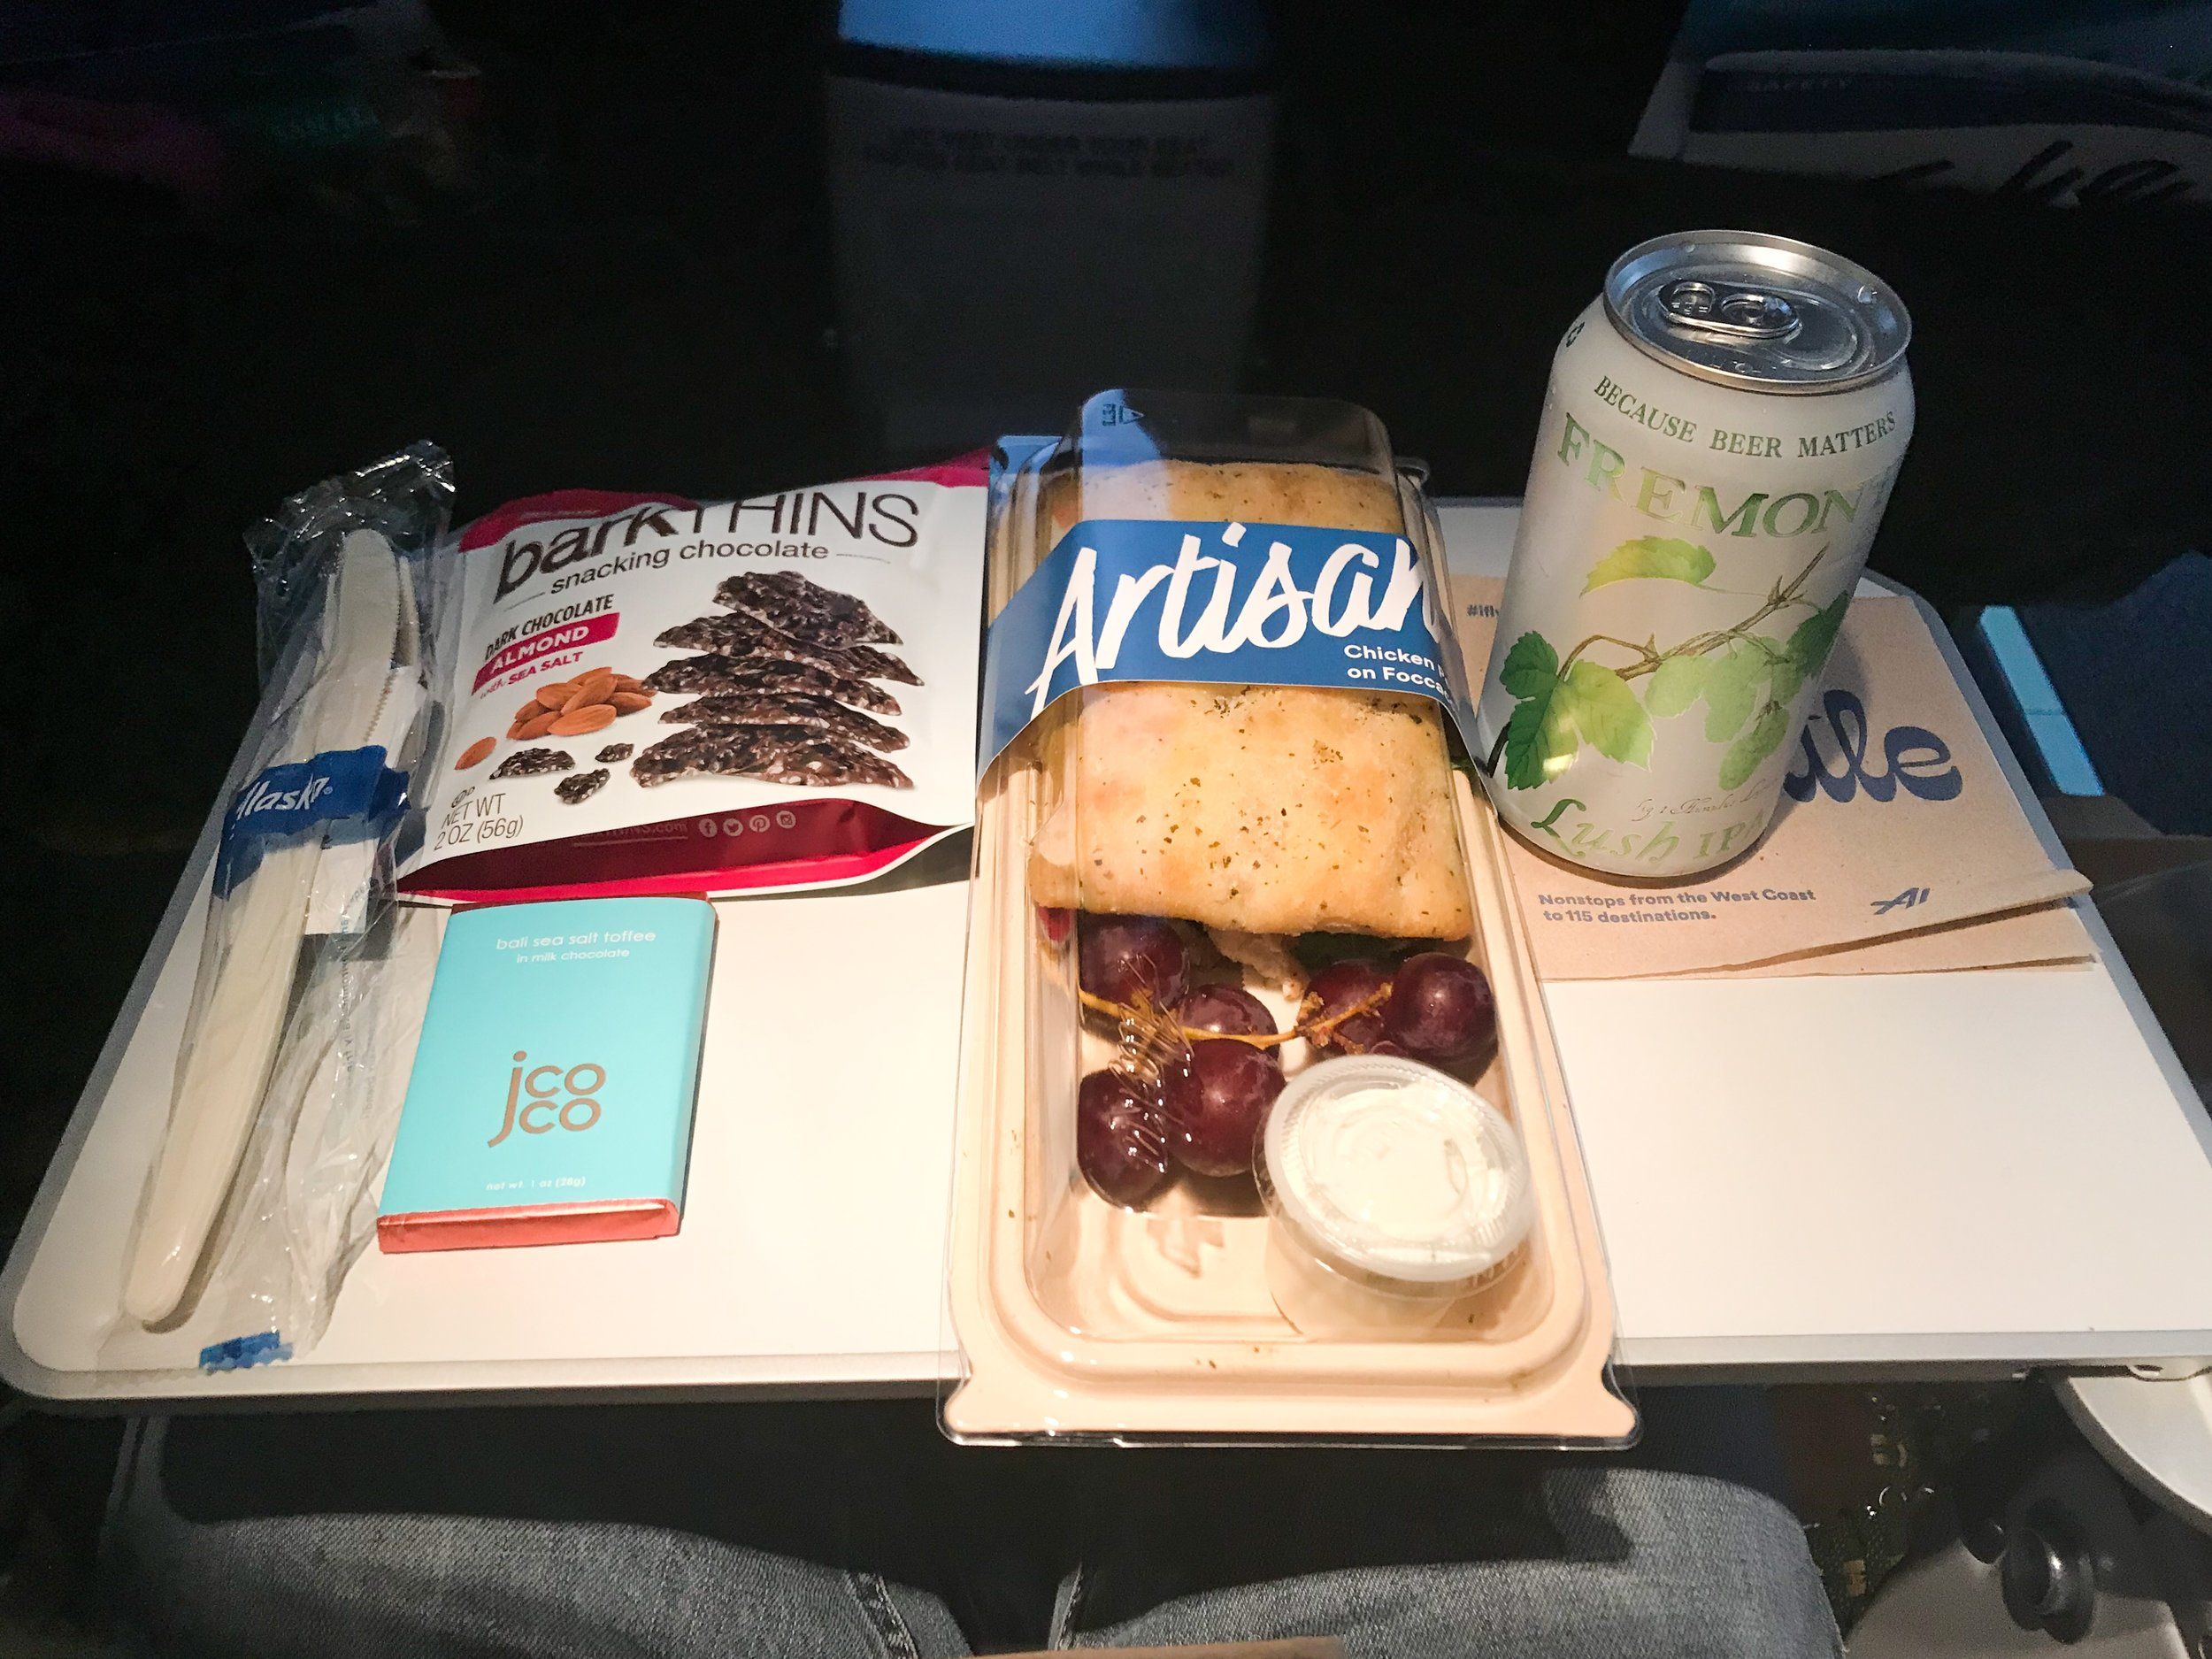 What a feast! Premium Class passengers receive complimentary alcoholic beverages and premium snacks (the barkthins). As an MVP Gold I also received the milk chocolate bar. The flight attendant thanked me for being a Gold member before handing it to me. I had pre-ordered the chicken pesto sandwich to give it a try. It wasn't very good, especially for $9.50. The sandwich was very dry and kind of bland. I suggest spending that money for food at the airport or just bring your own, rather than paying for food onboard.